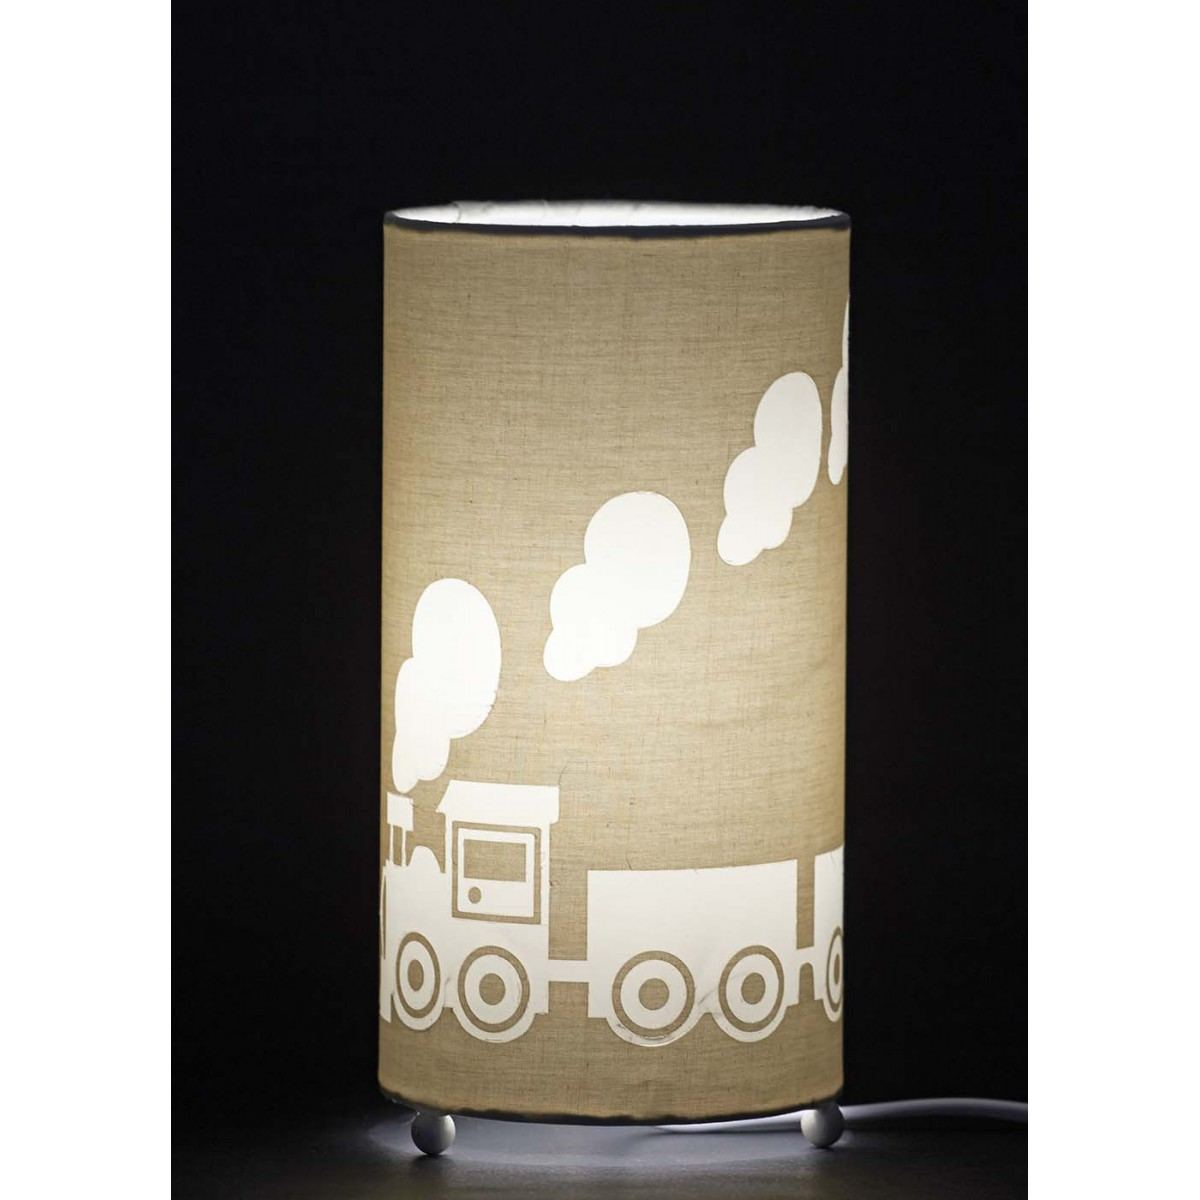 Lampe enfant gar on th me petit train aratextil - Lampe table de nuit ...